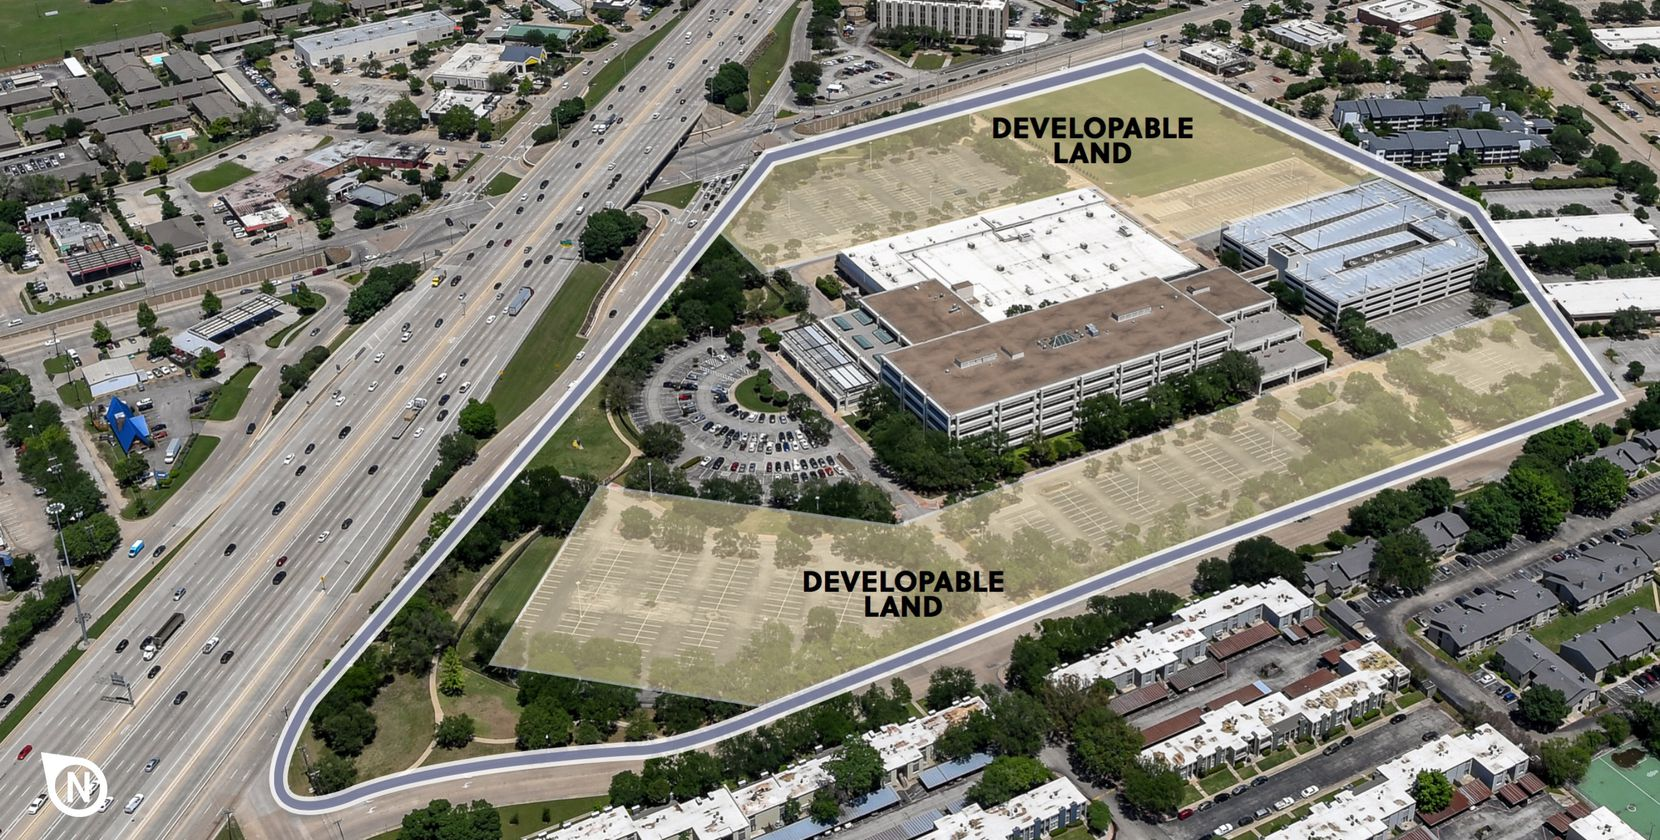 The Fossil campus has land for additional construction.